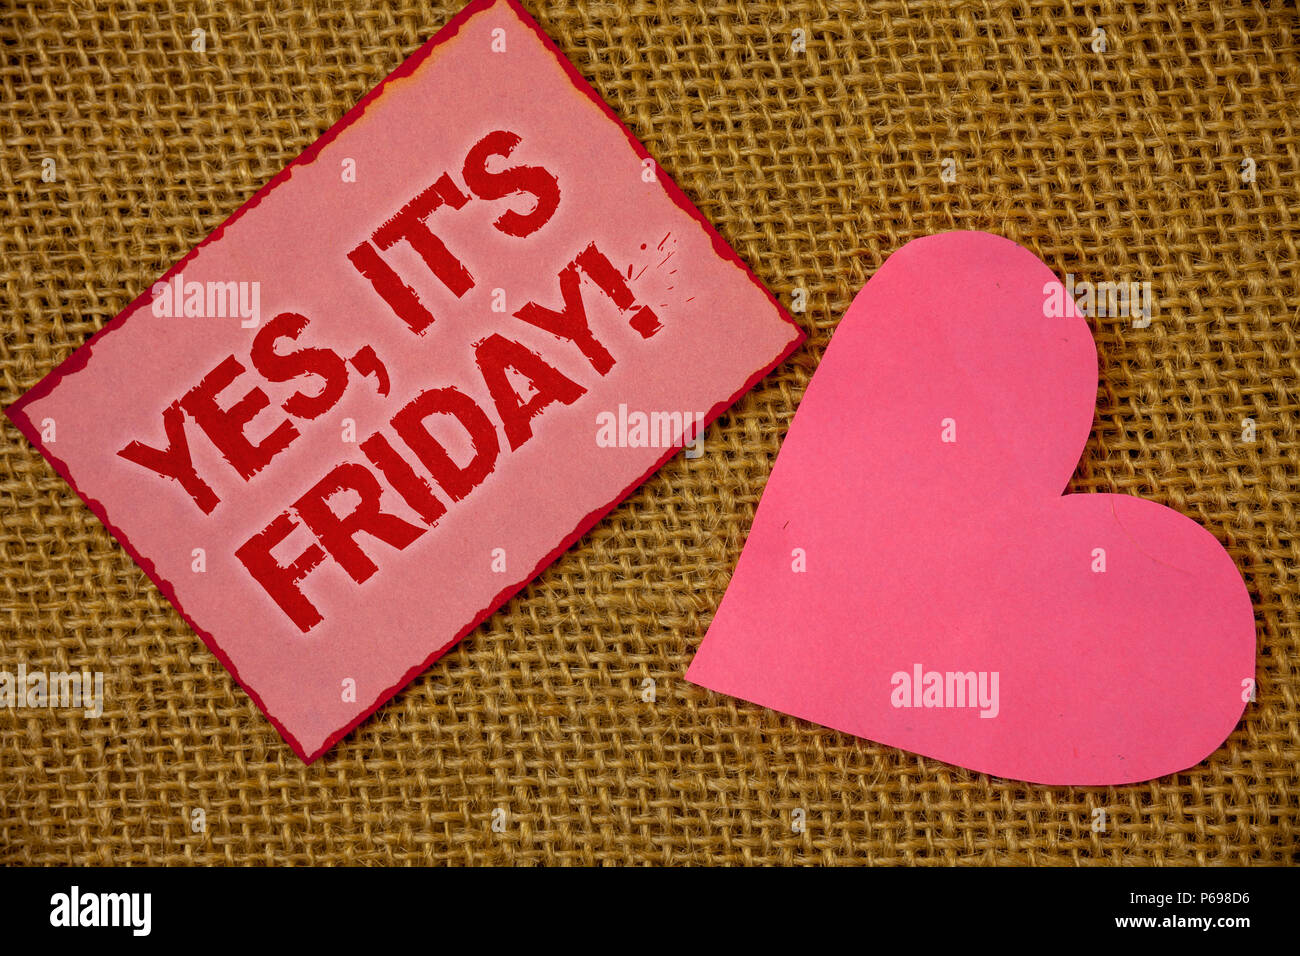 Writing note showing Yes, It'S Friday Motivational Call. Business photo showcasing having weekend Taking rest break Lavender pink page with red border - Stock Image